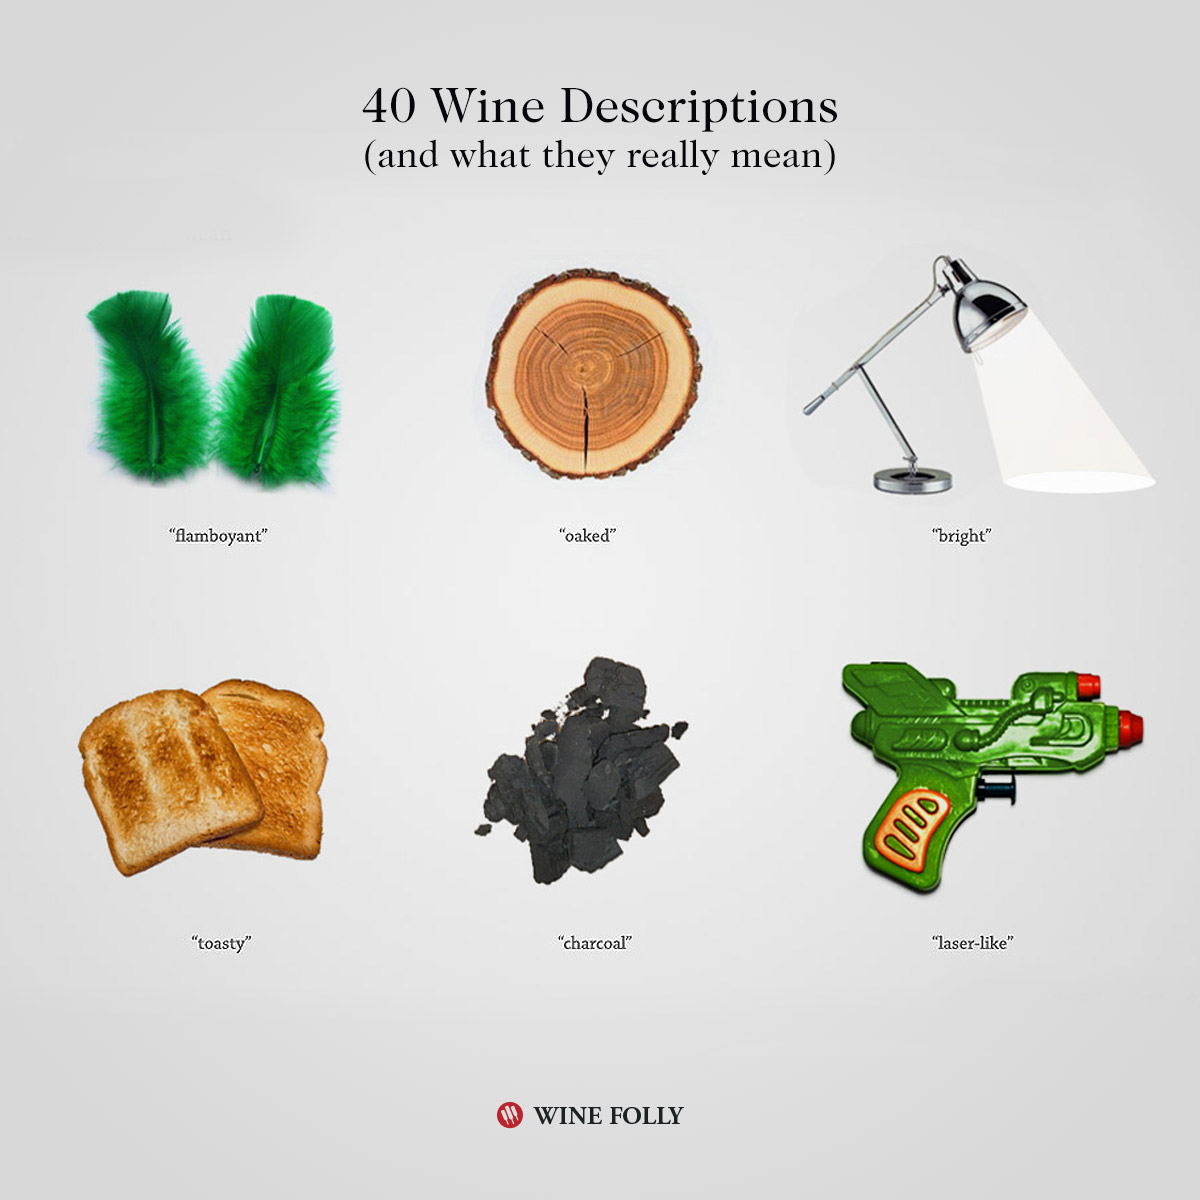 Wine Terms, Descriptions and what they really mean - by Wine Folly